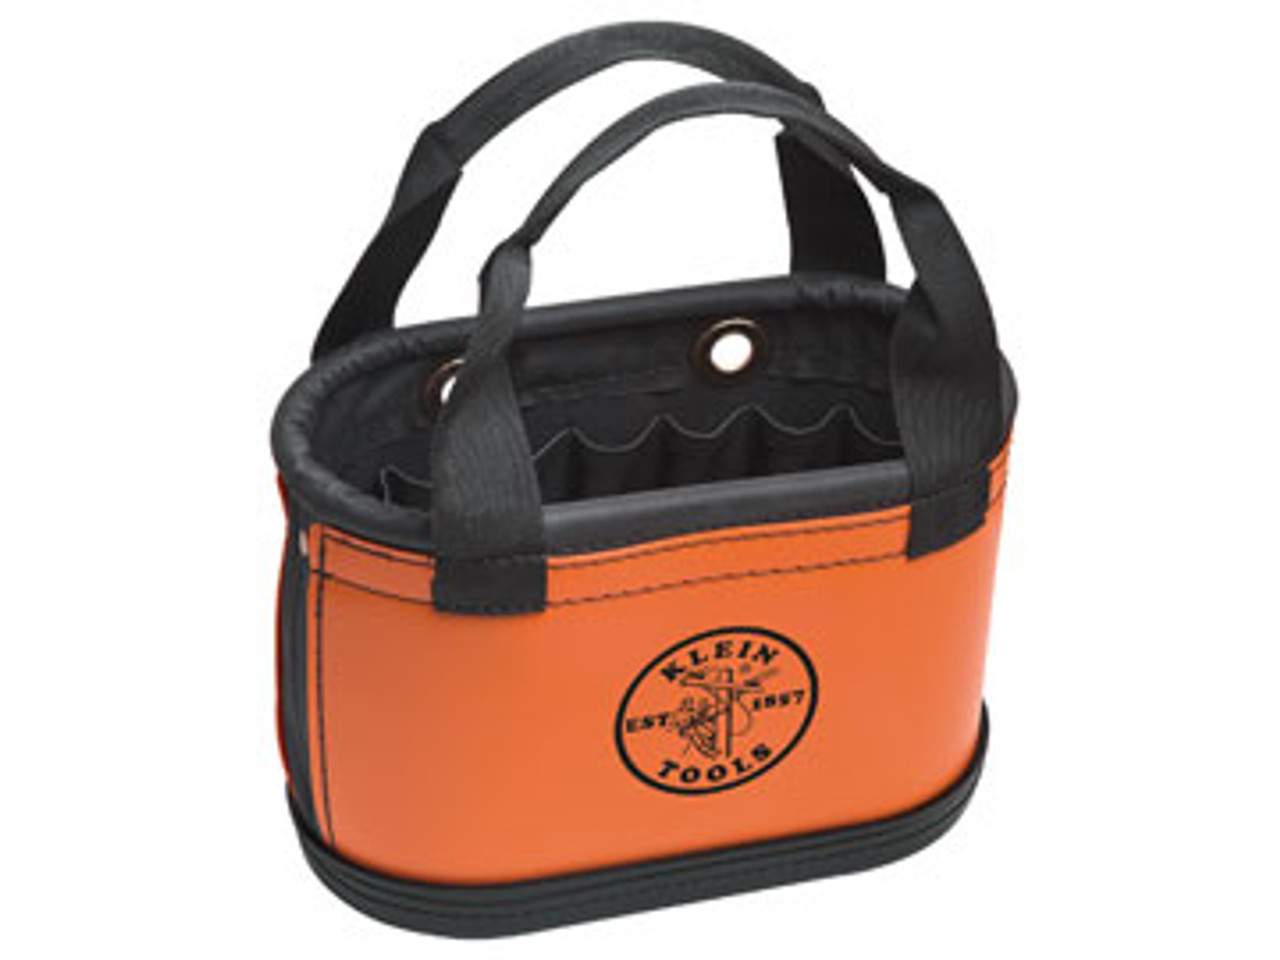 5144HBS Hard Body Oval Bucket with 14 Interior Pockets